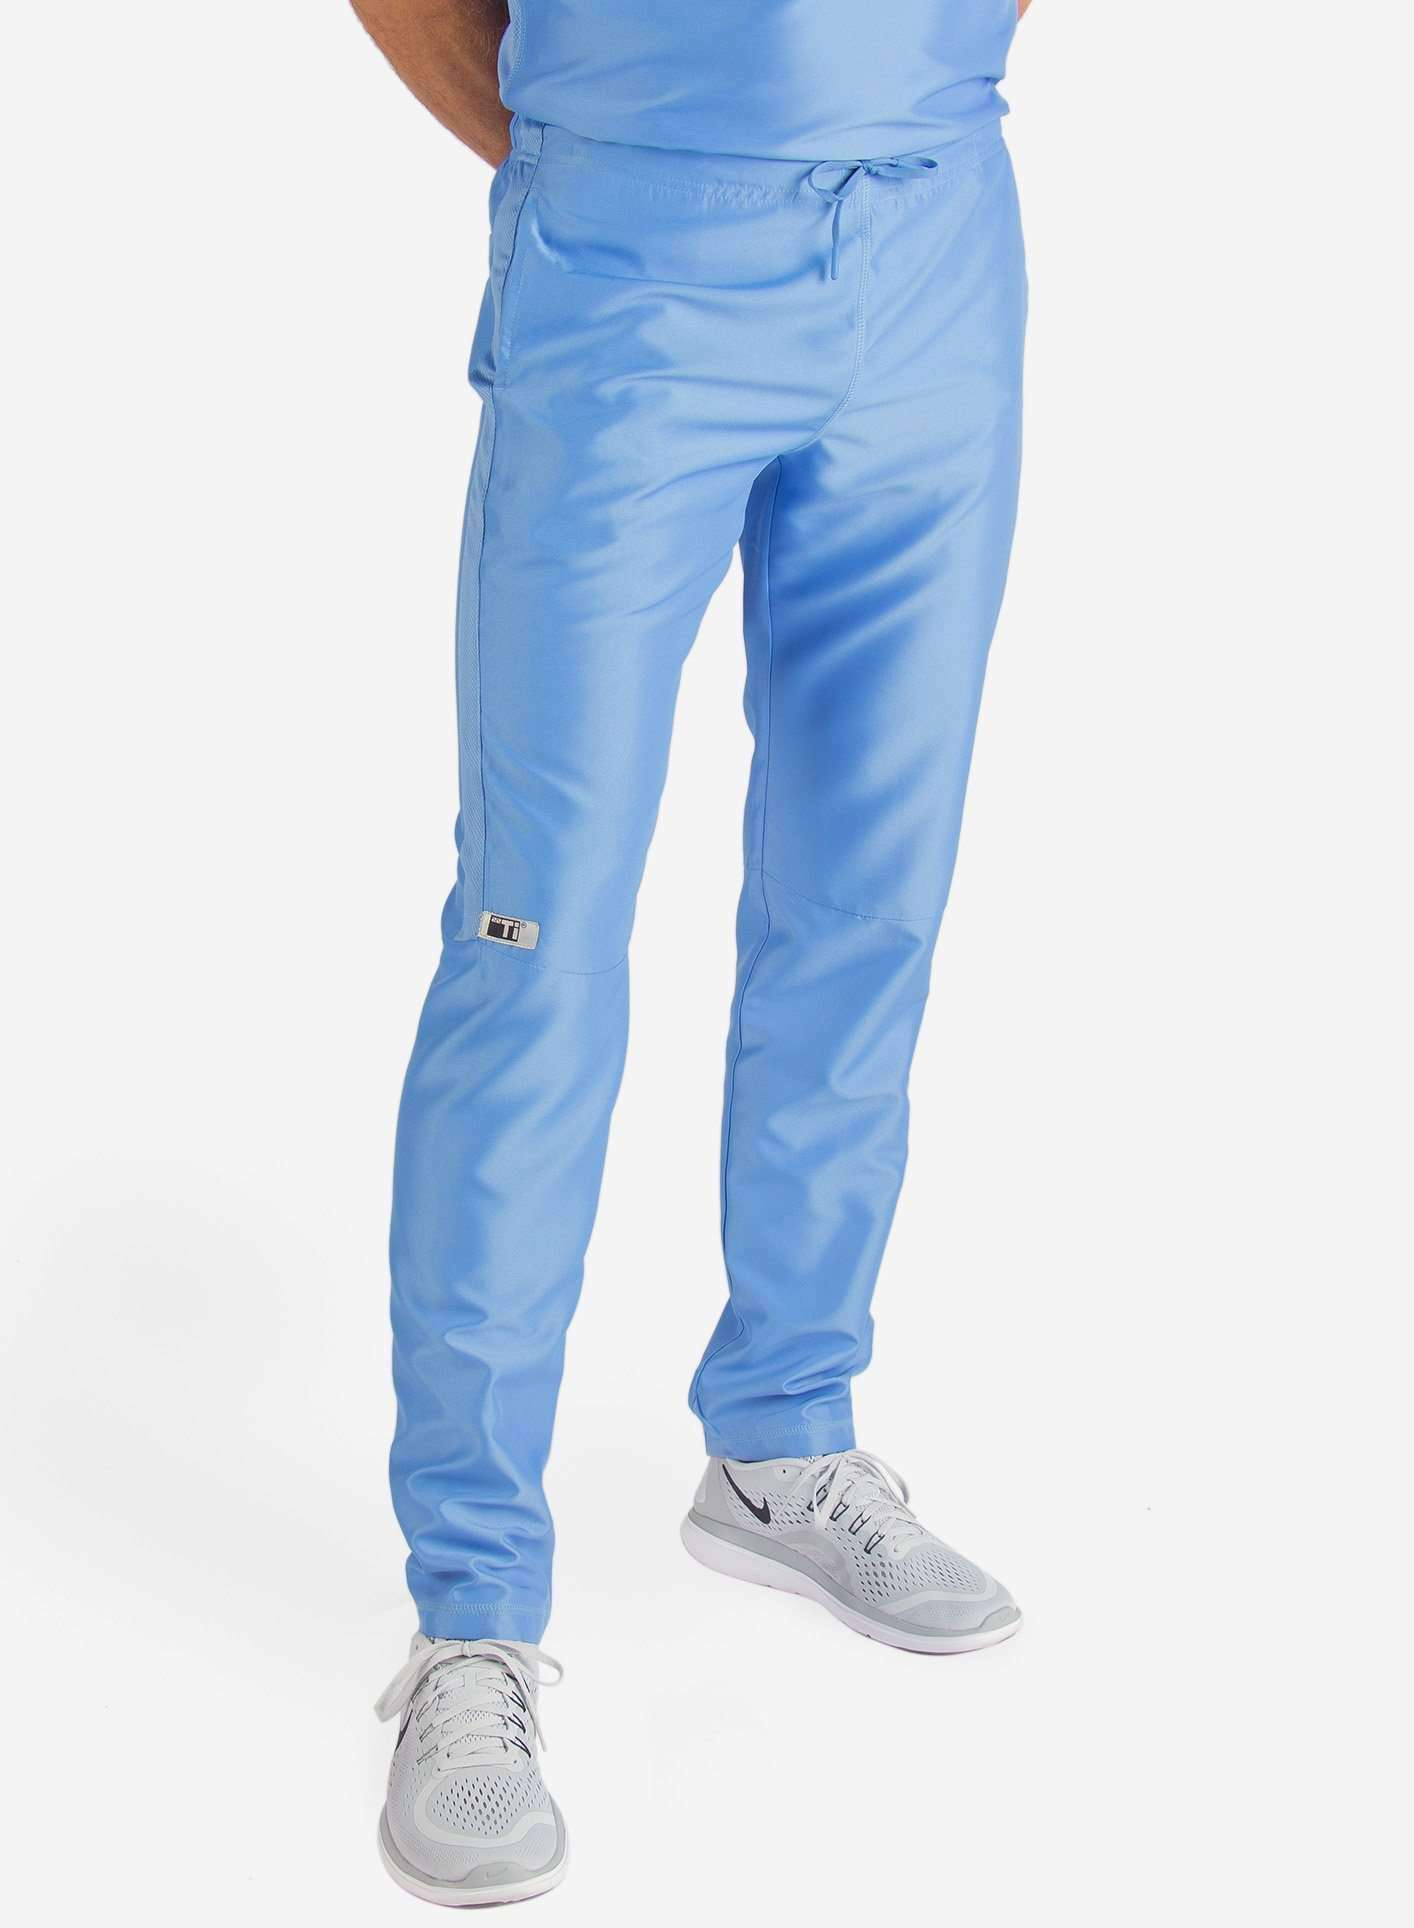 Men's Slim Fit Scrub Pants in Ceil Blue